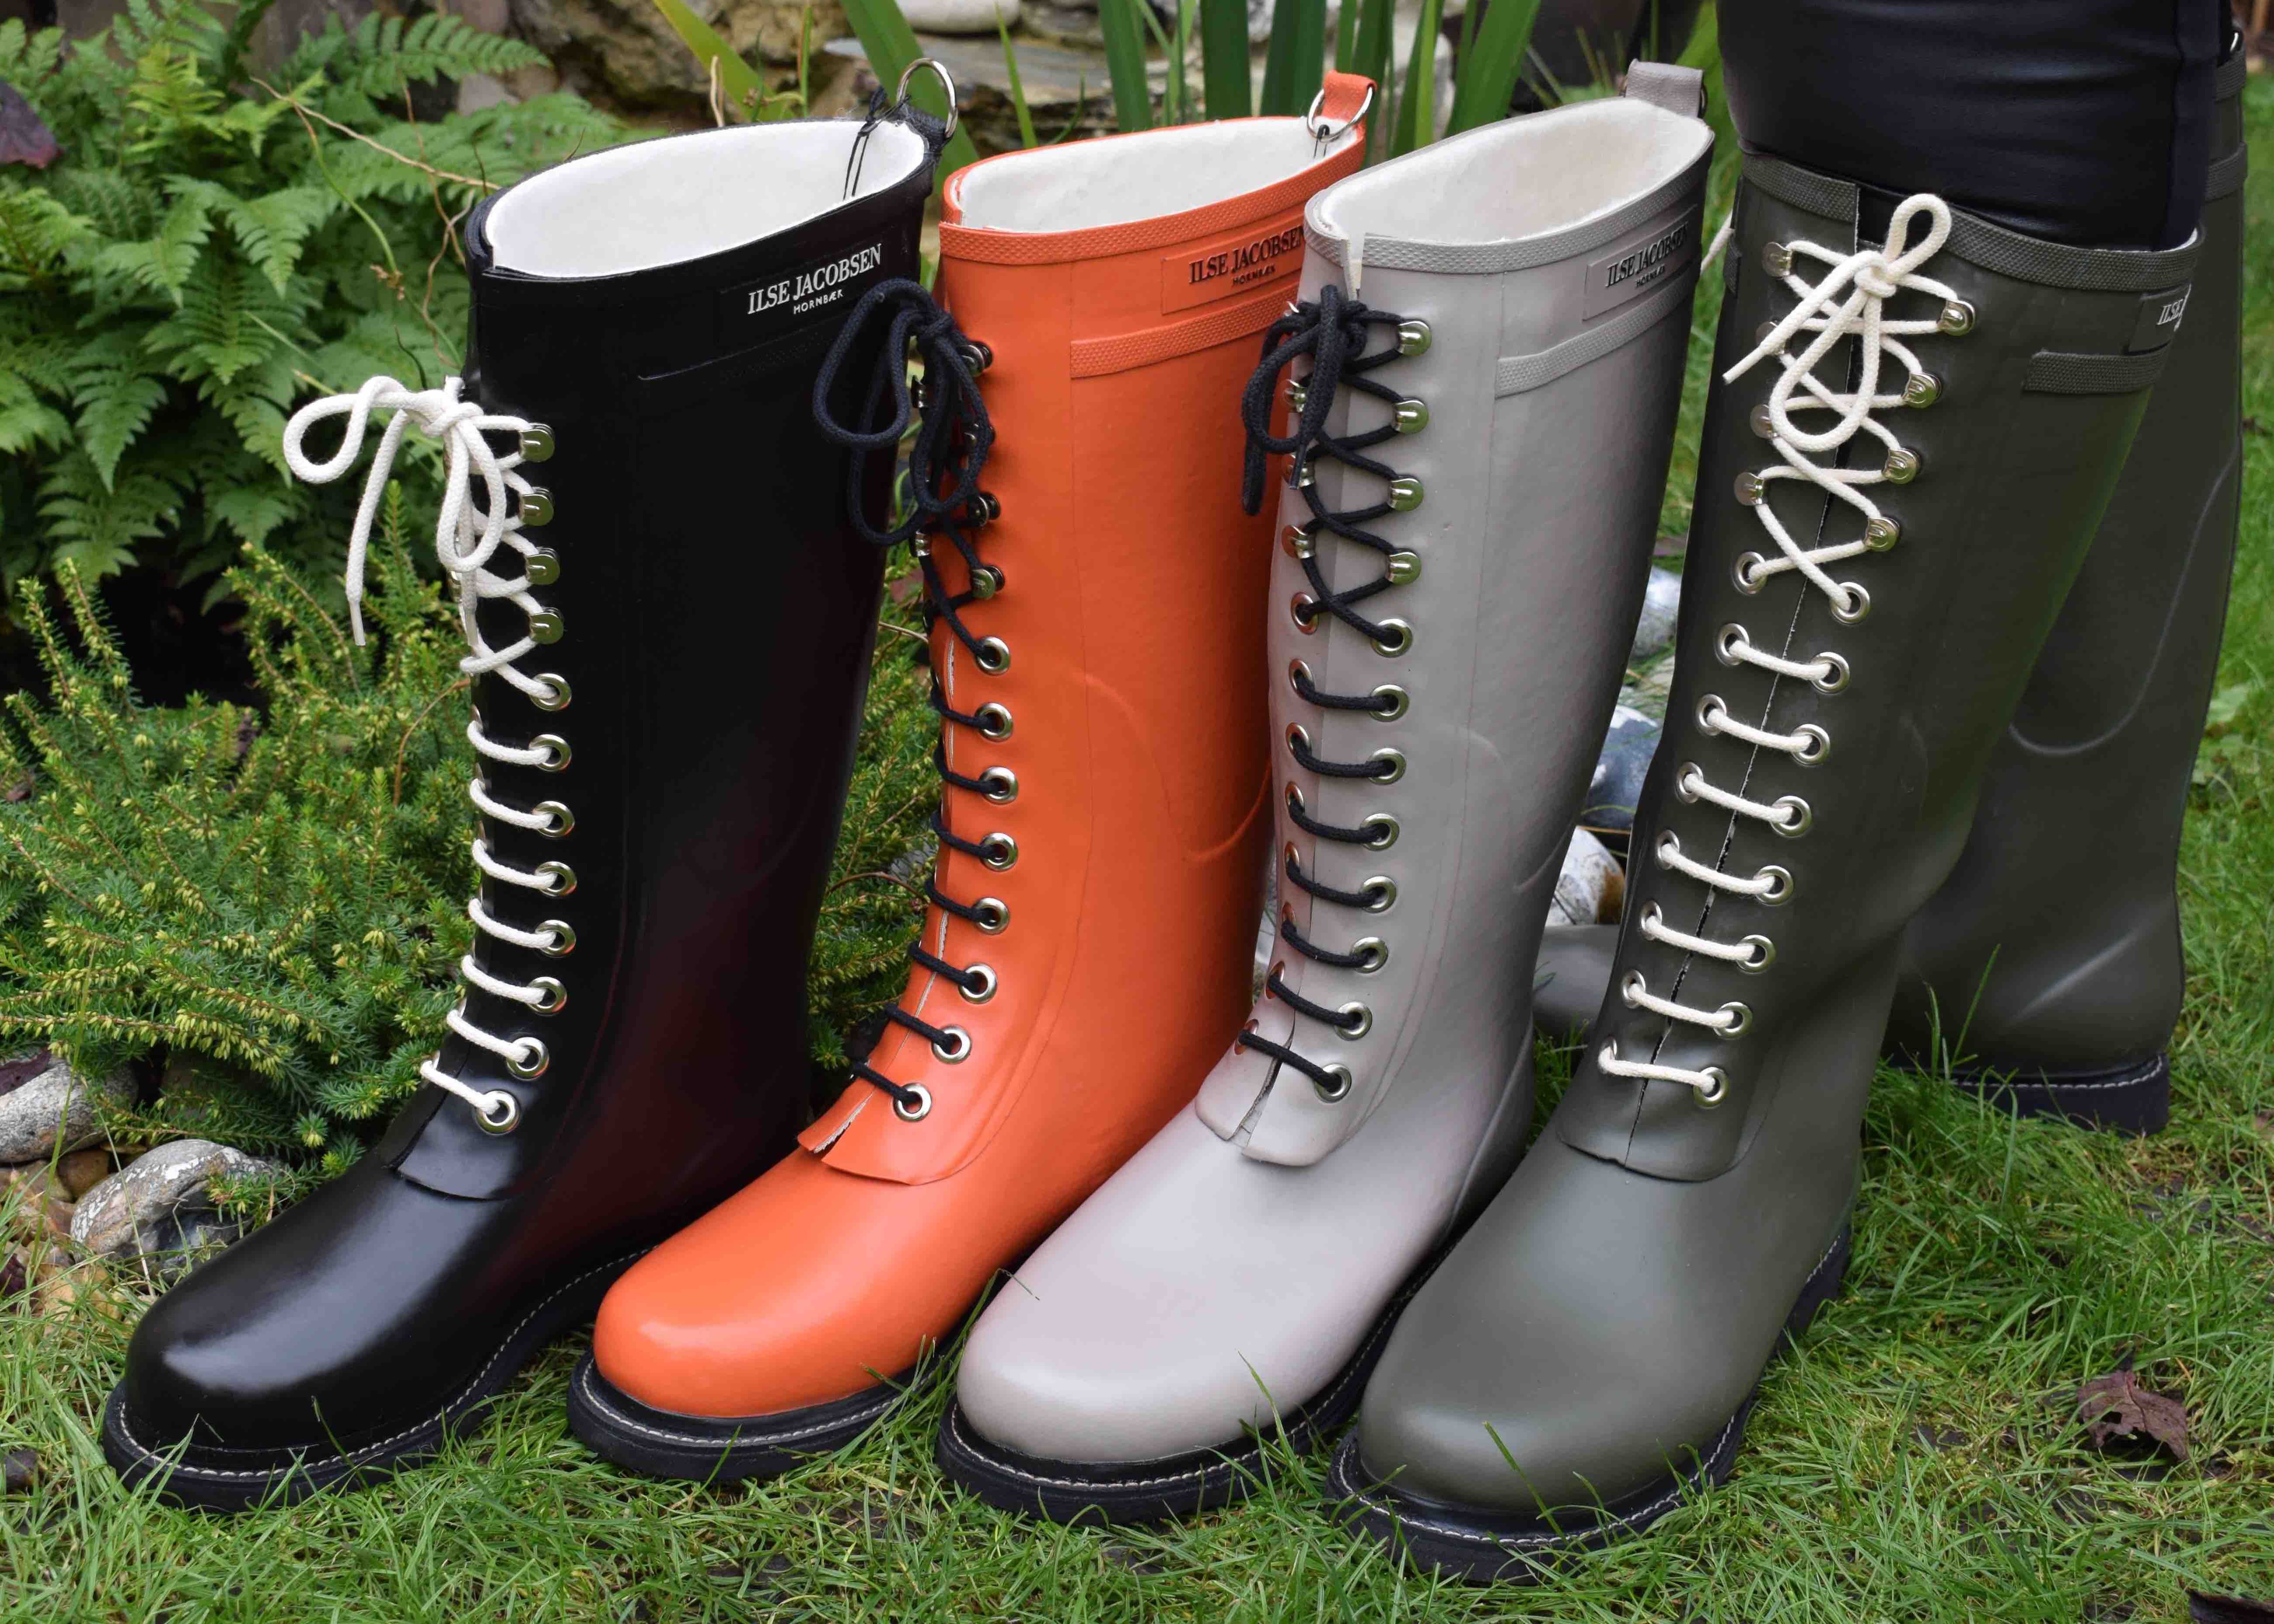 0b1795e460d Four fabulous Boots from our collection - Ilse Jacobsen's Rub1 in ...